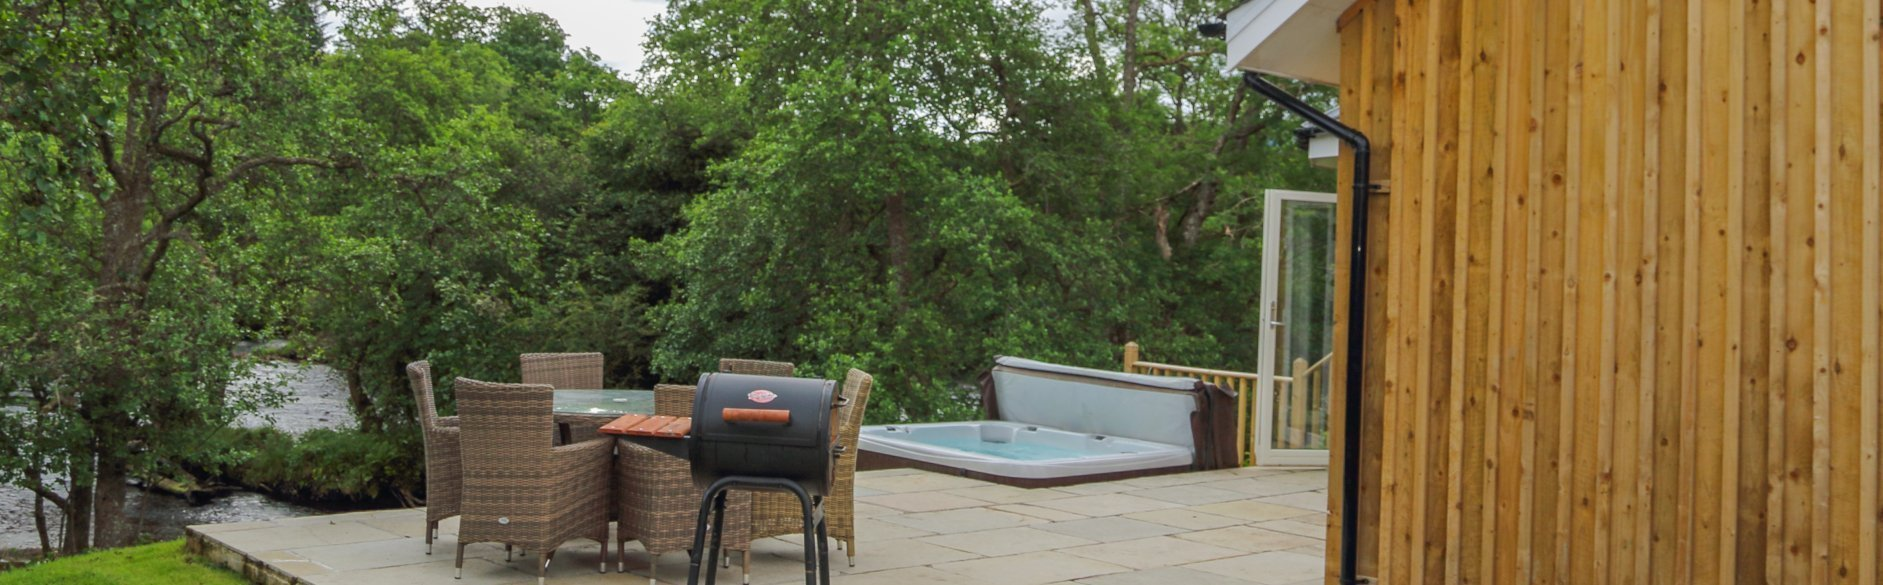 Hot Tub, BBQ and table and chairs on decking